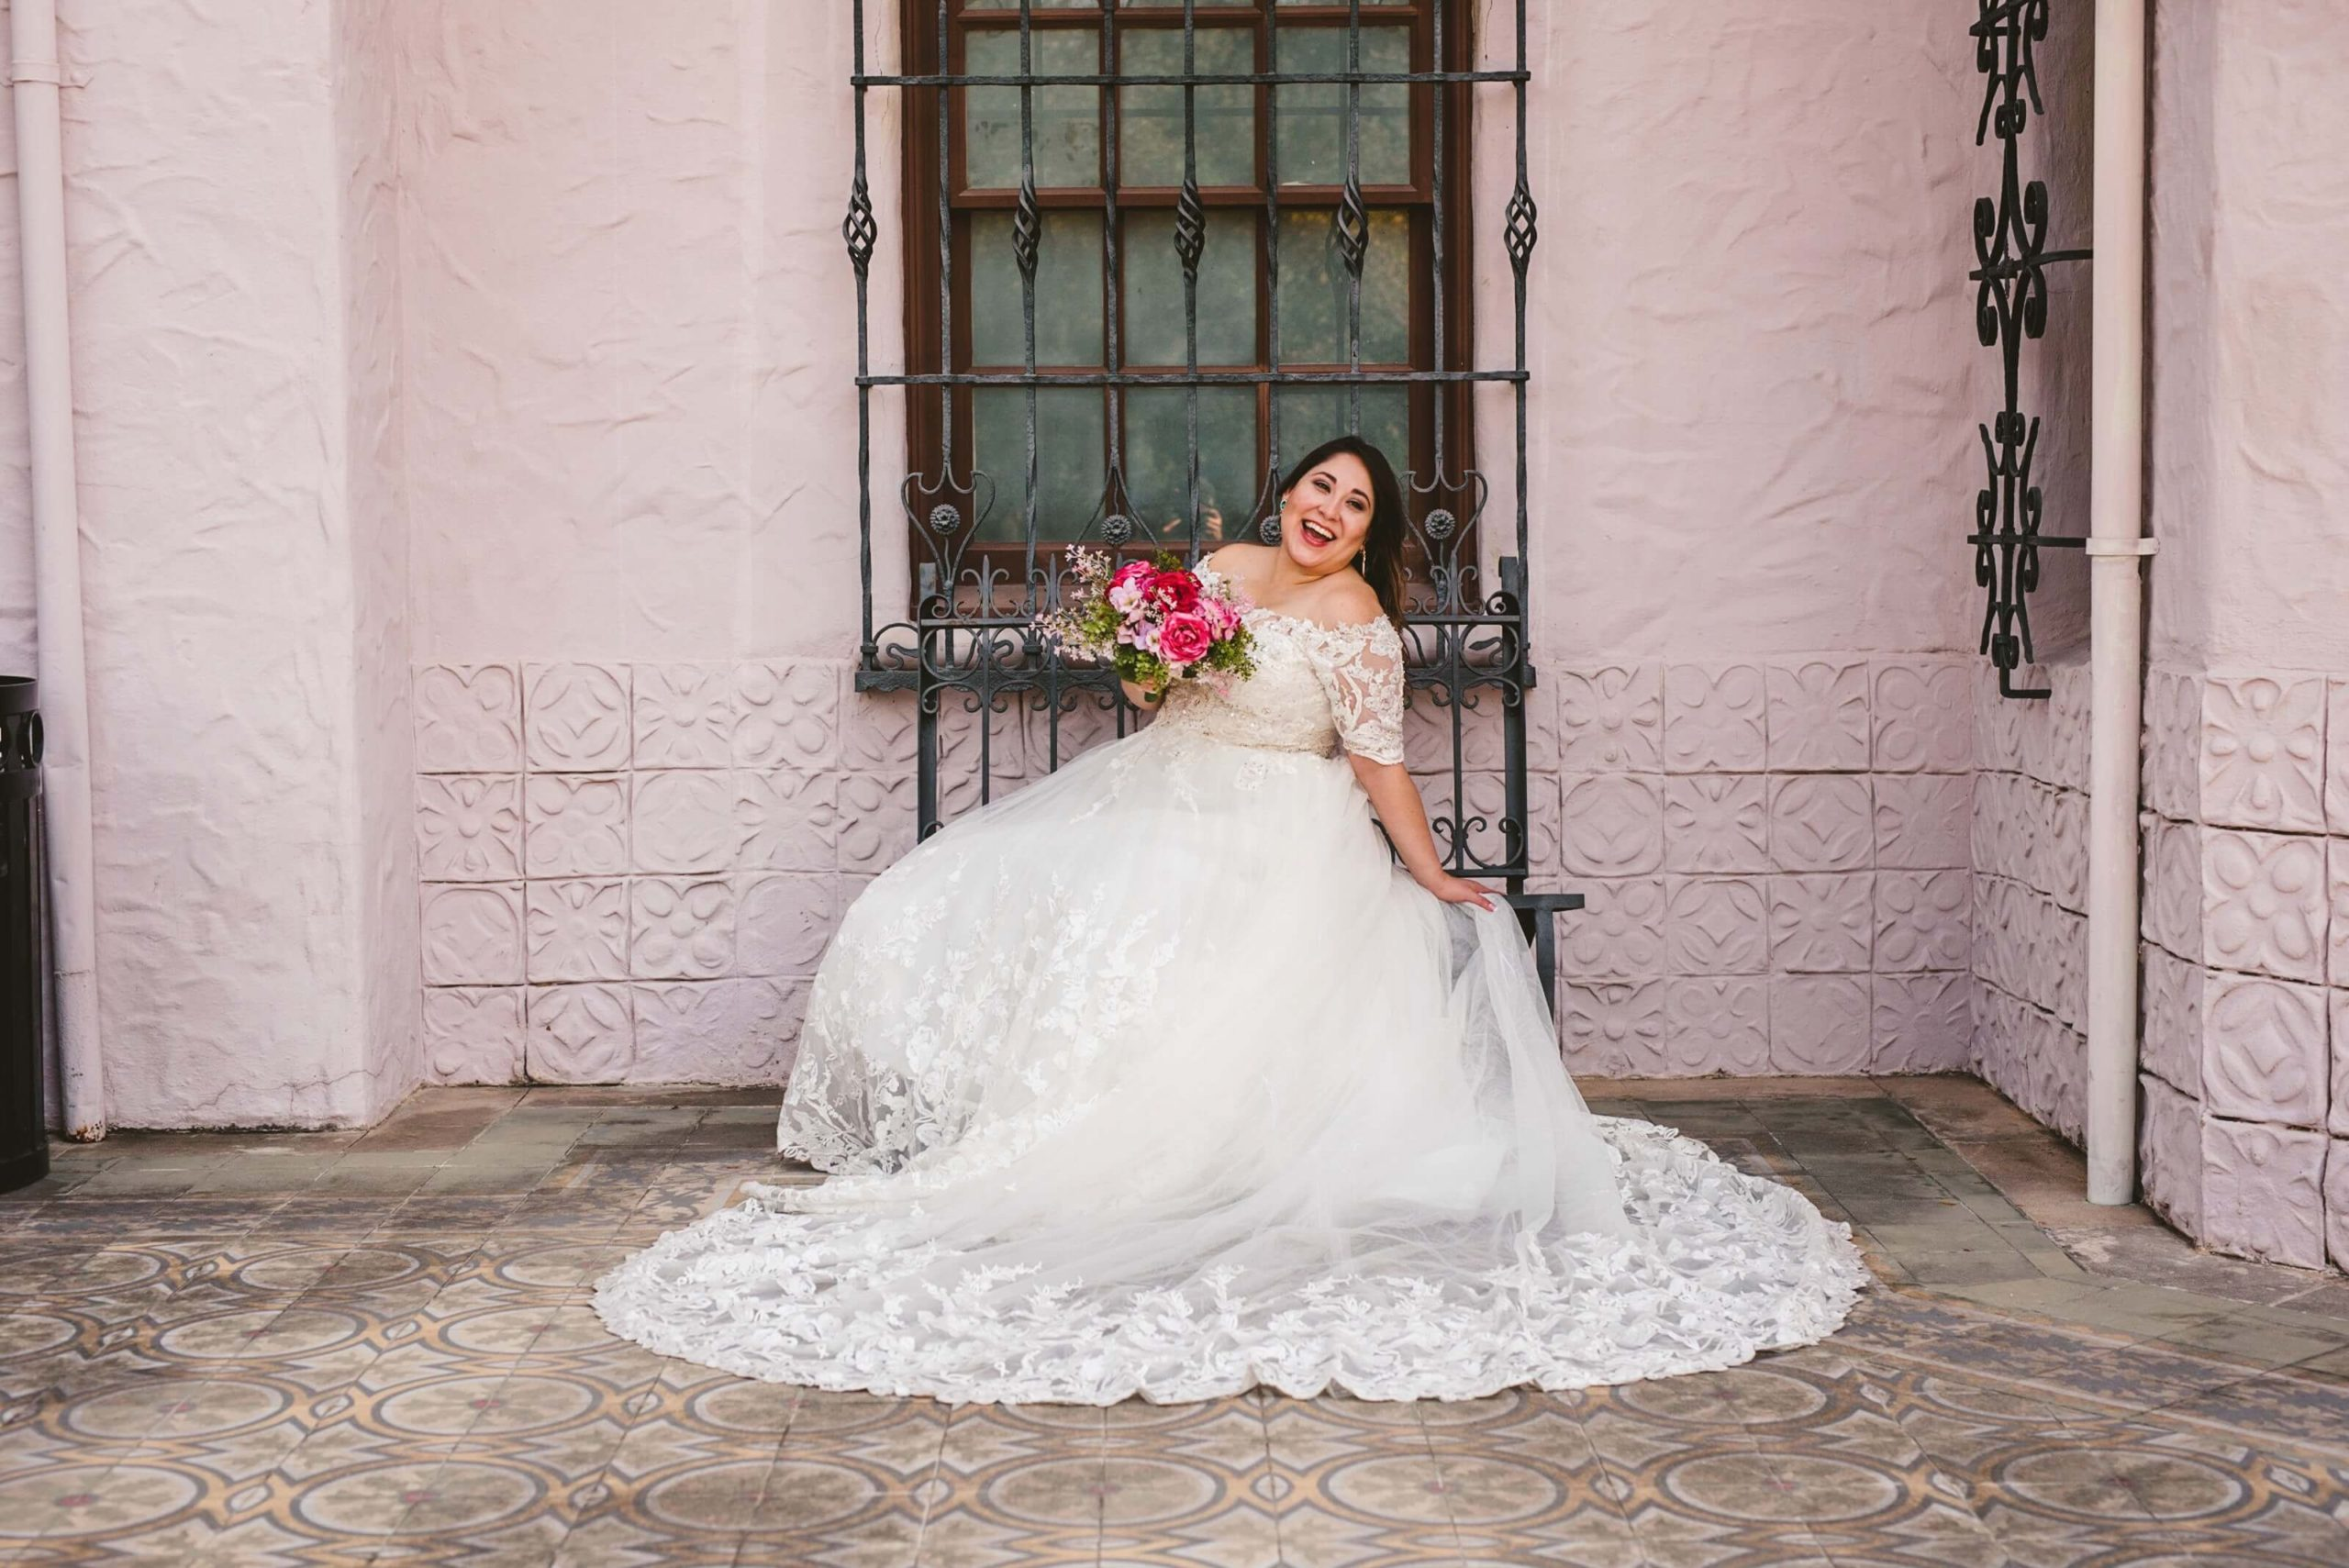 Bridal Portraits at McNay Art Museum San Antonio, Texas